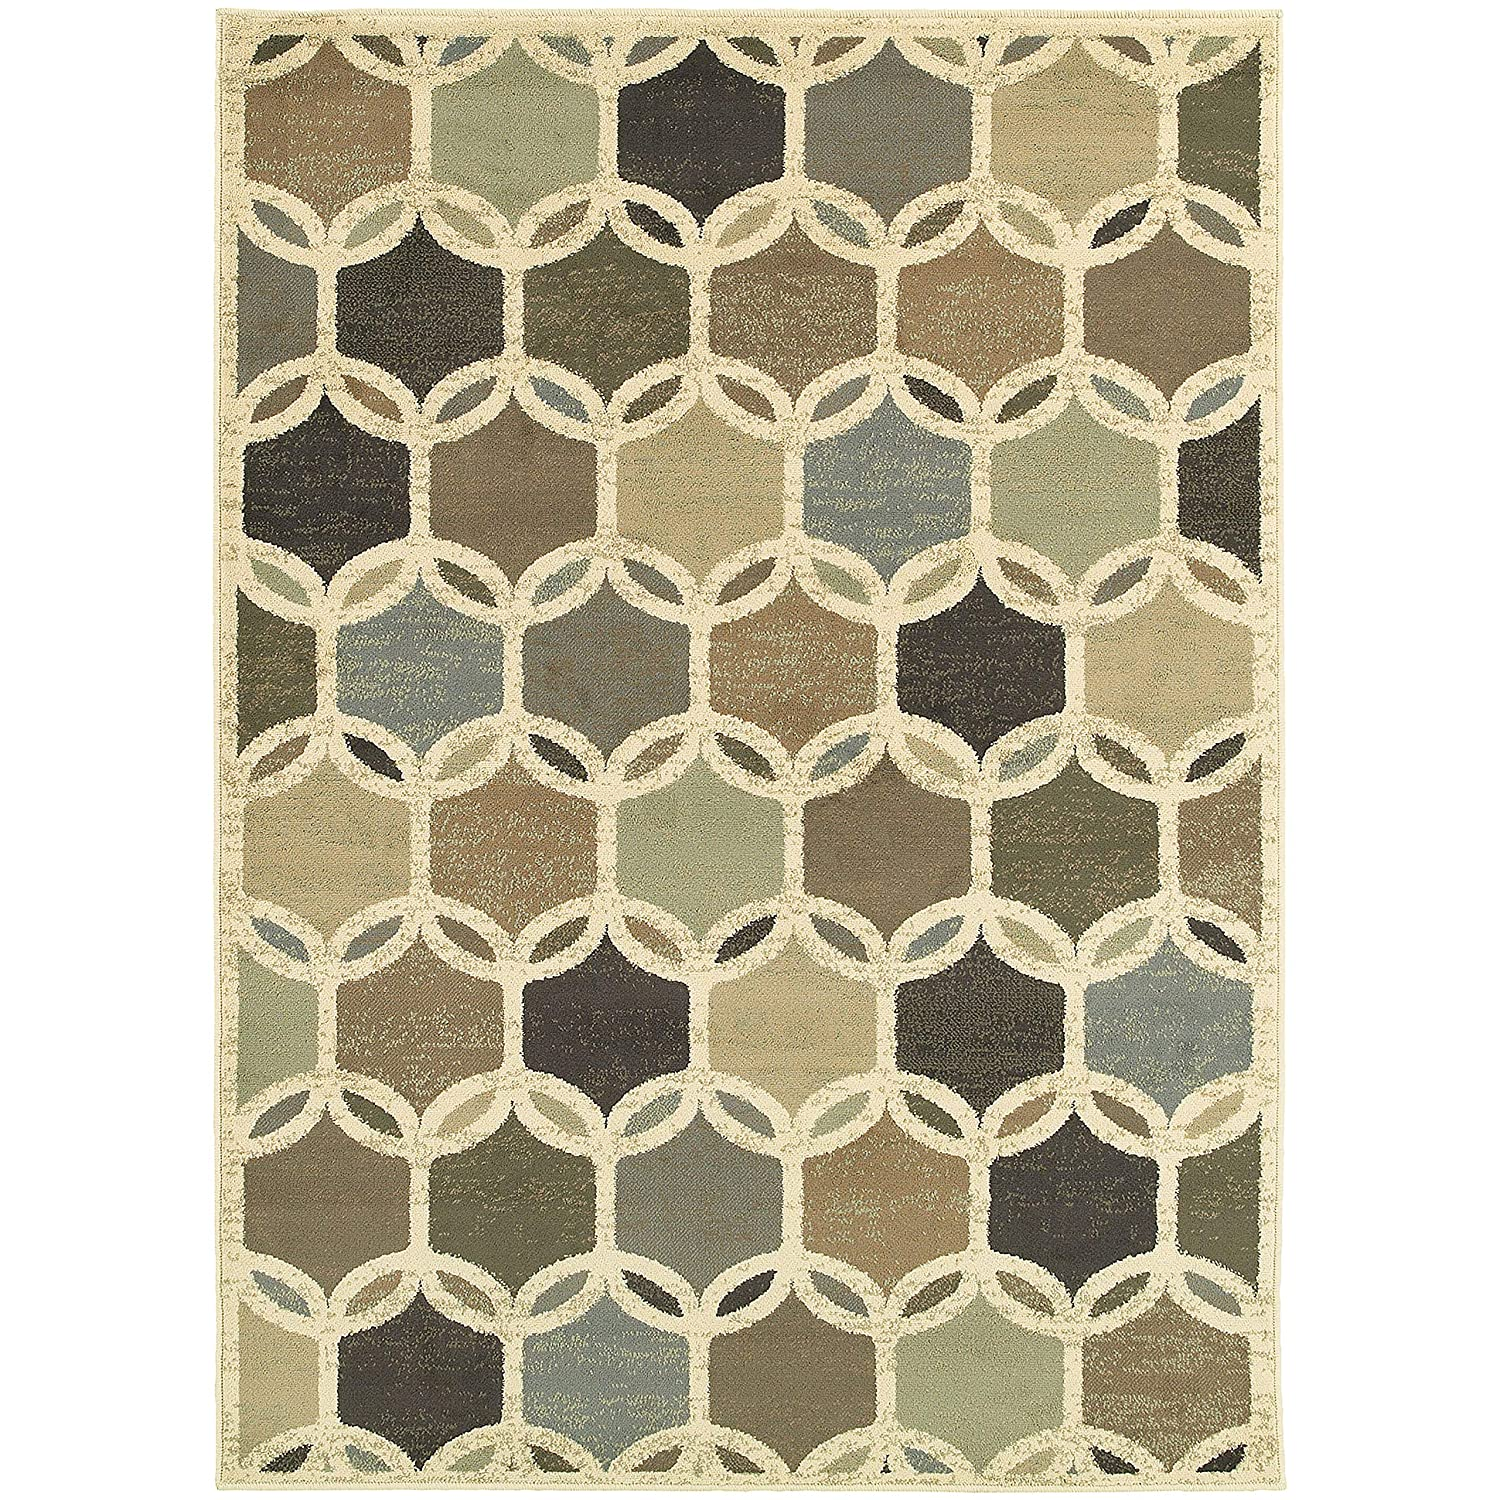 Christopher Knight Home CK-9W090 Bentley Geometric Indoor Area Rug 9ft 10in X 12ft 10in Ivory,Multi